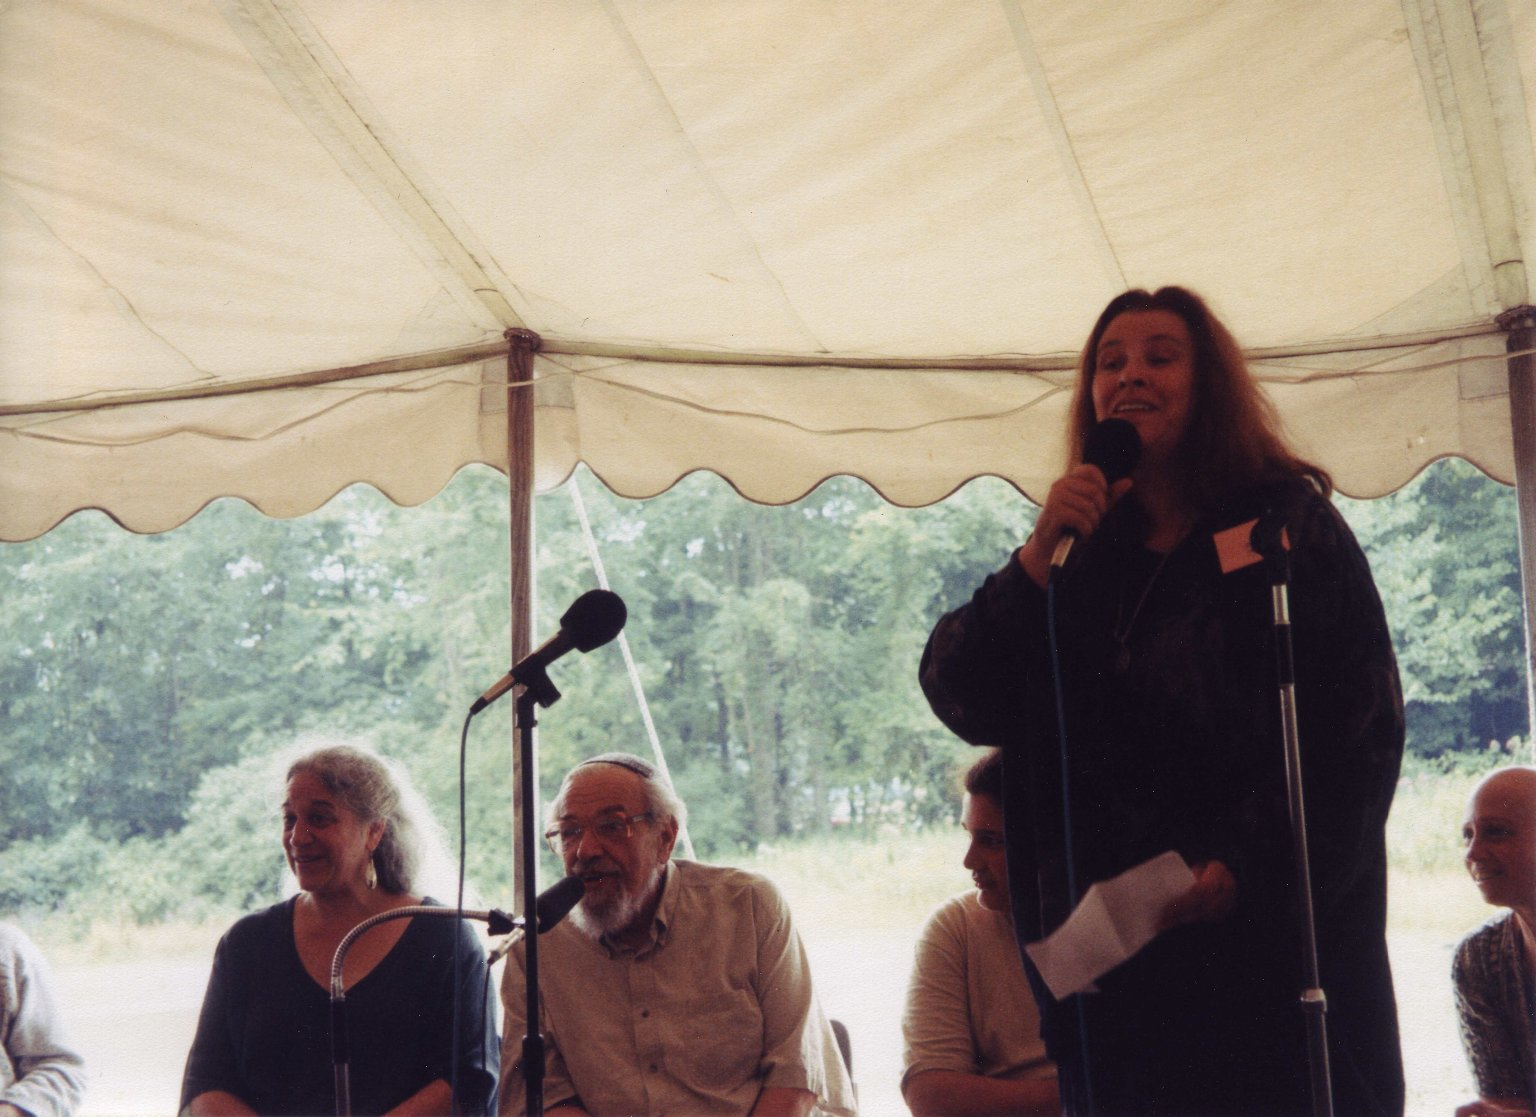 Jean Houston speaking at Rabbi Zalman Schachter-Shalomi's 75th birthday celebration at Elat Chayyim, ca. 1999.